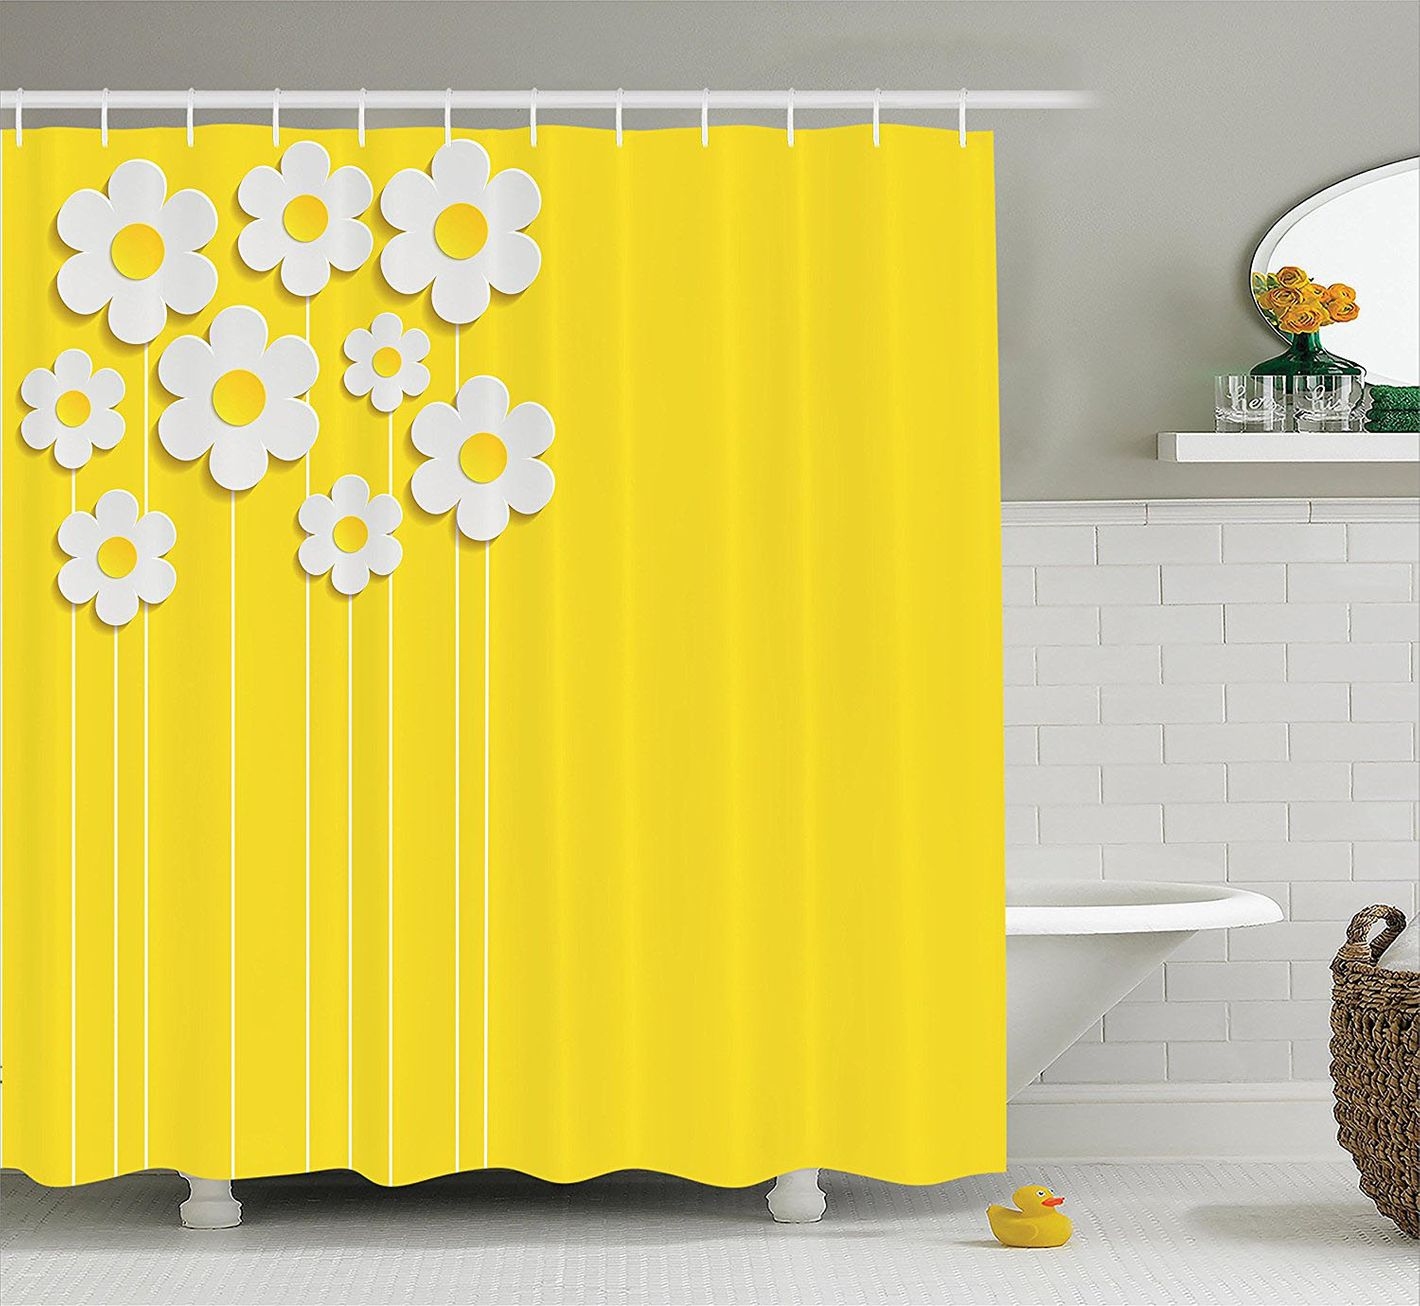 Ambesonne Yellow Decor Shower Curtain